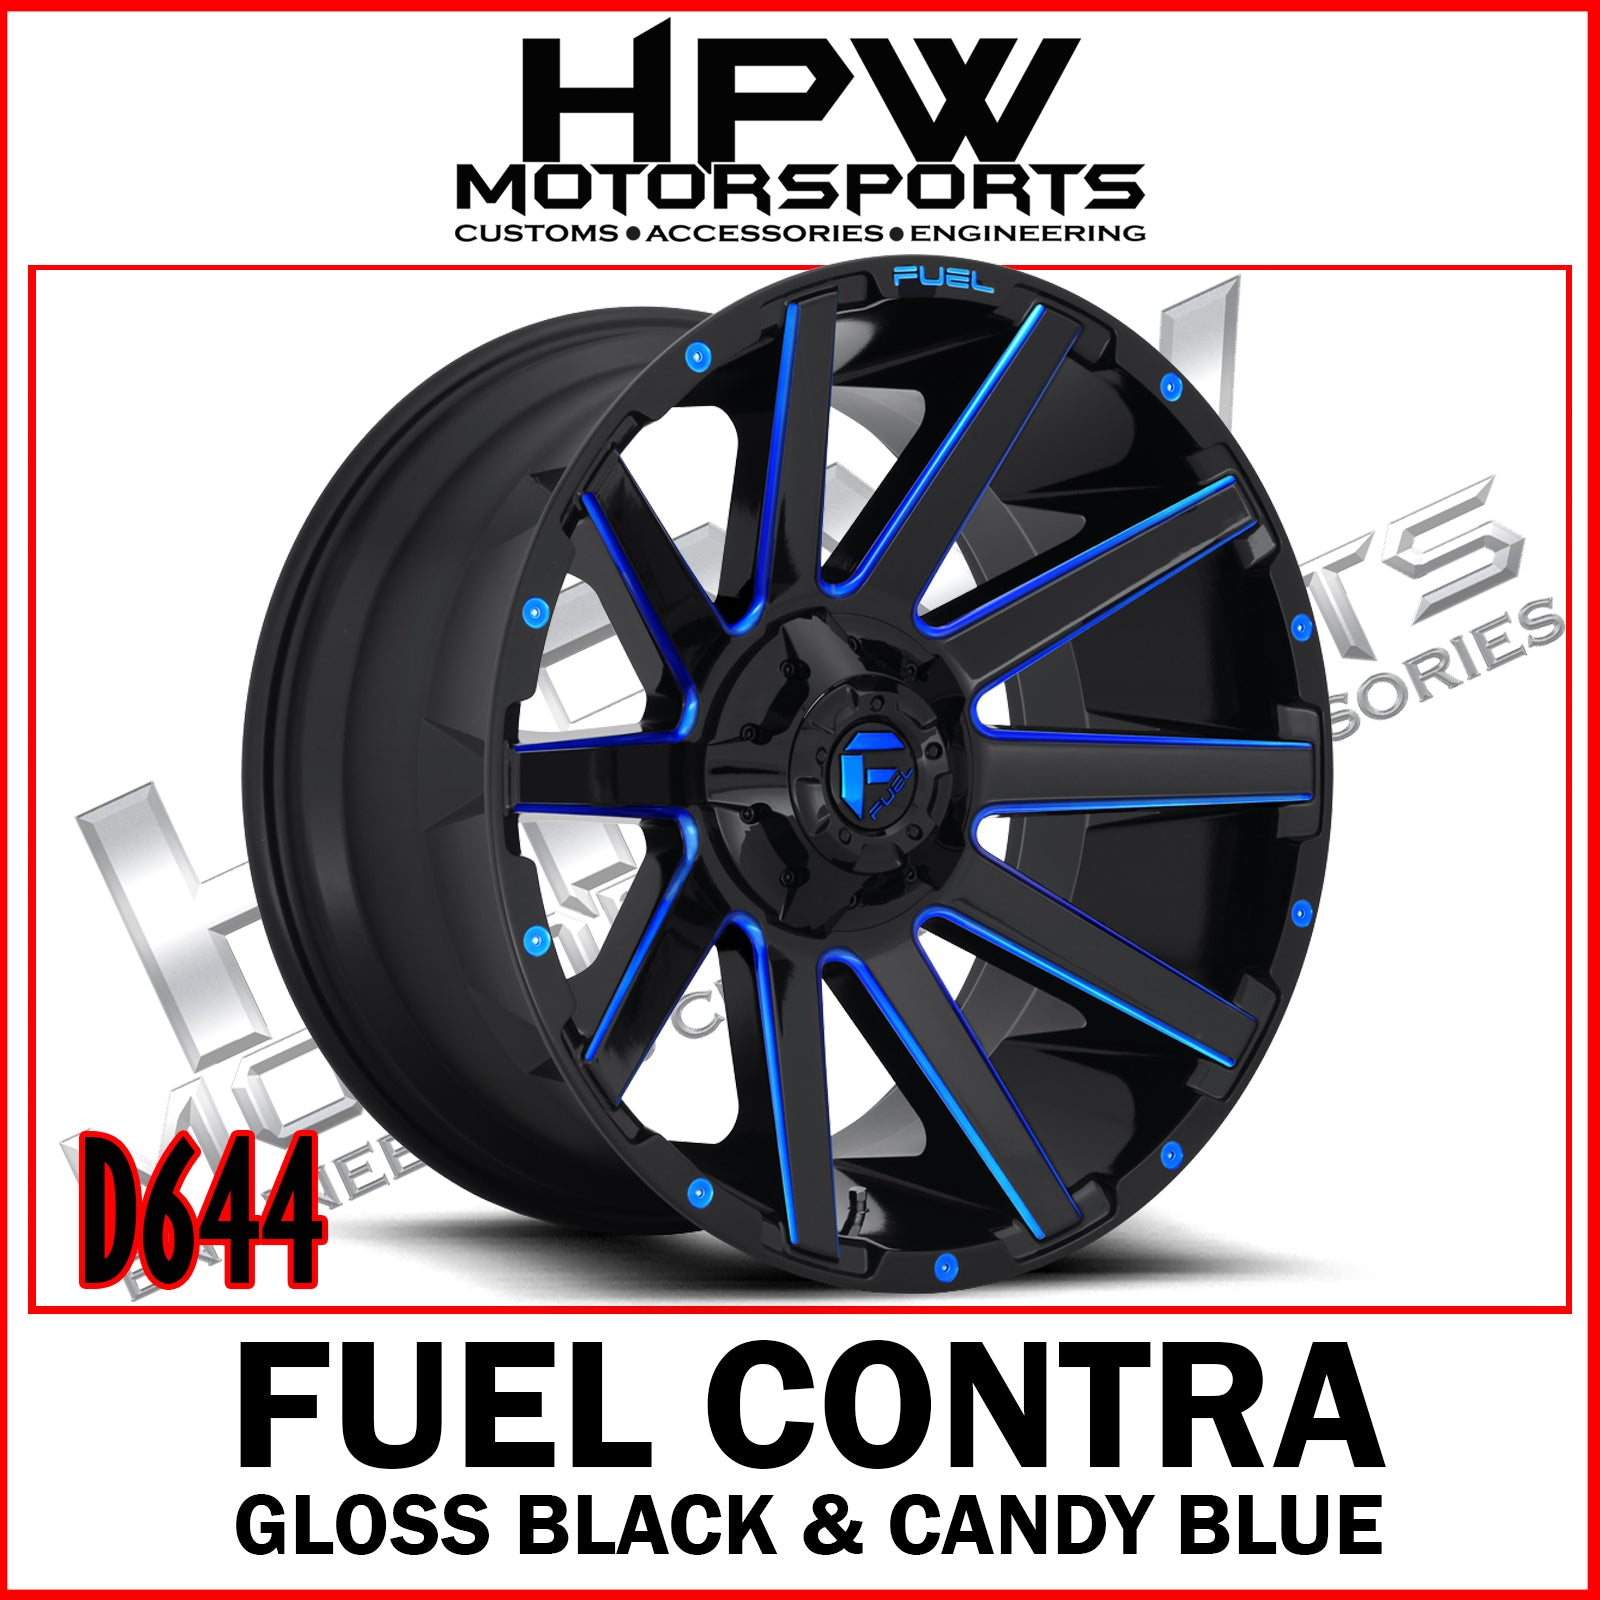 D644 FUEL CONTRA - GLOSS BLACK & CANDY BLUE - Set of 4